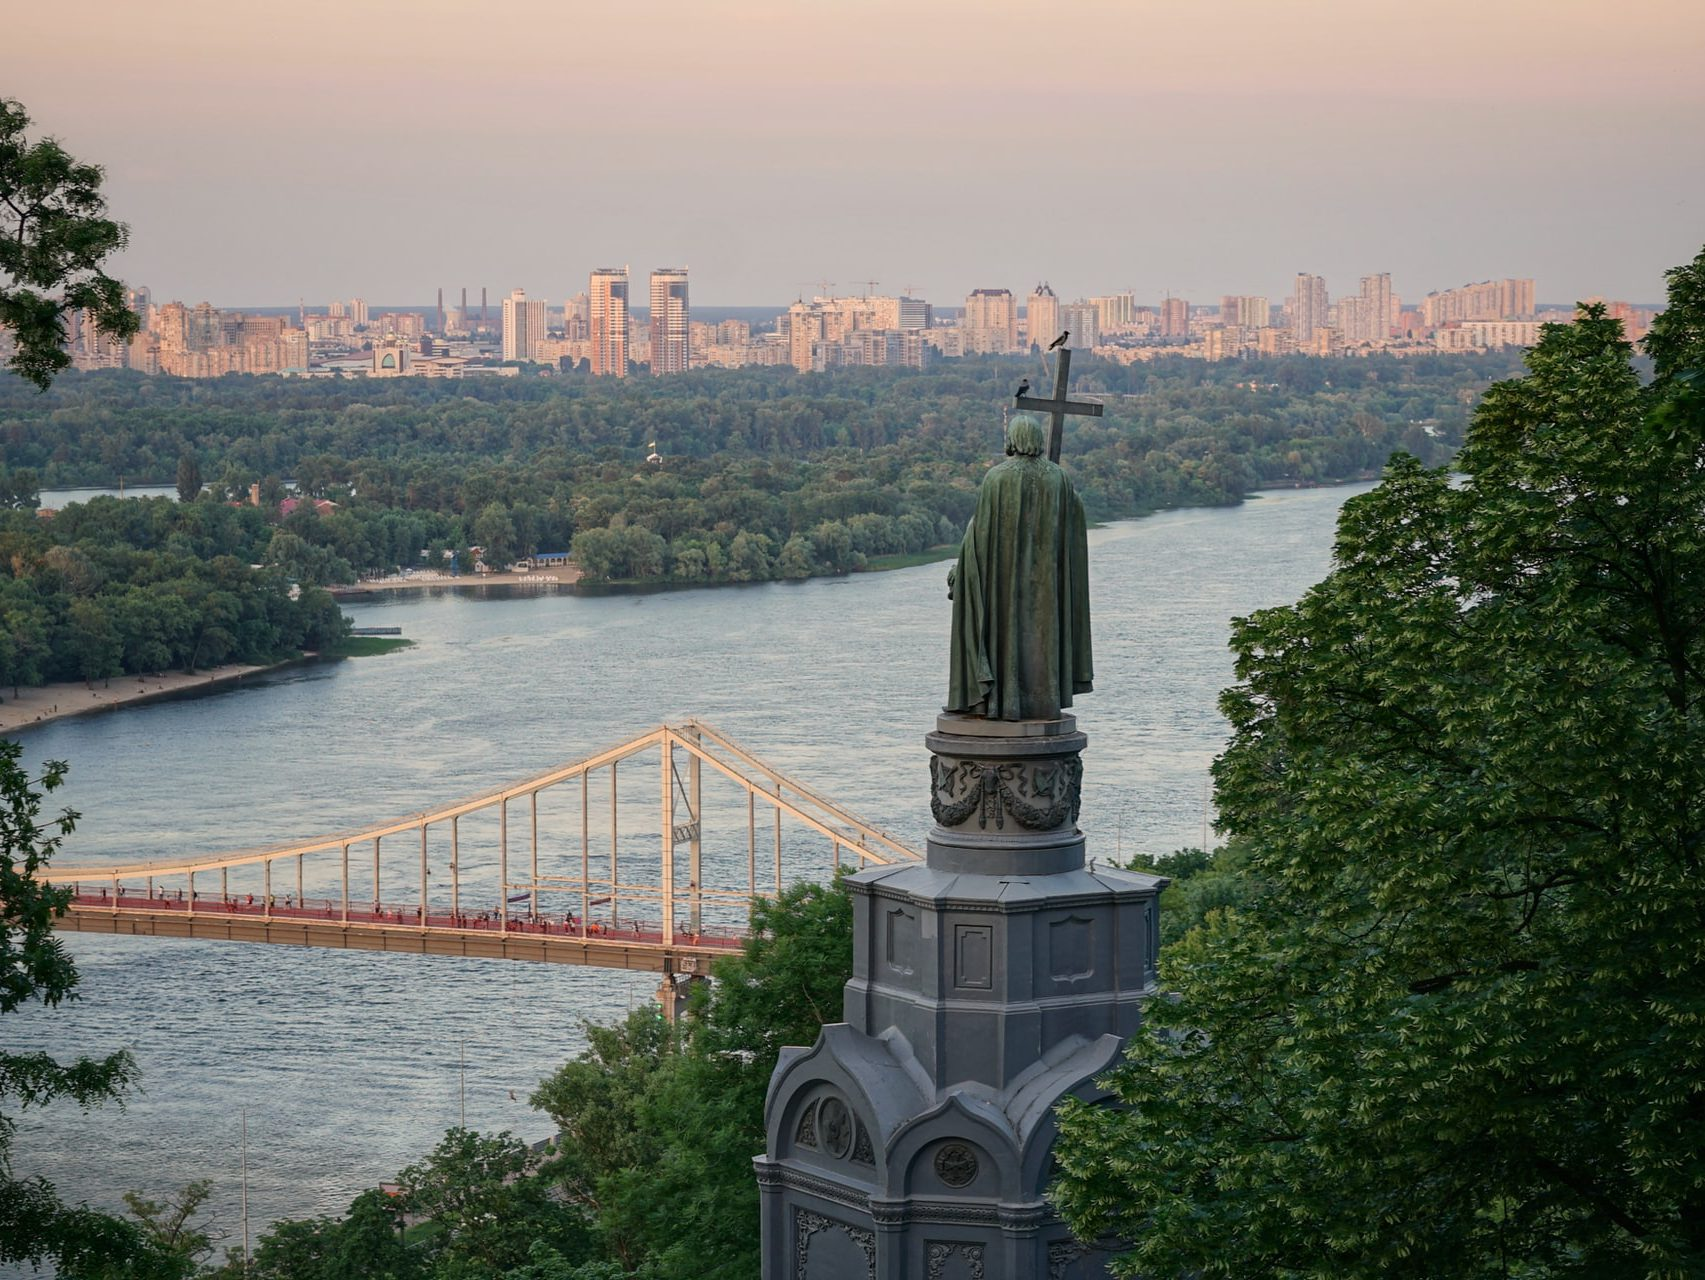 When you visit Ukraine, check out the capital city of Kyiv